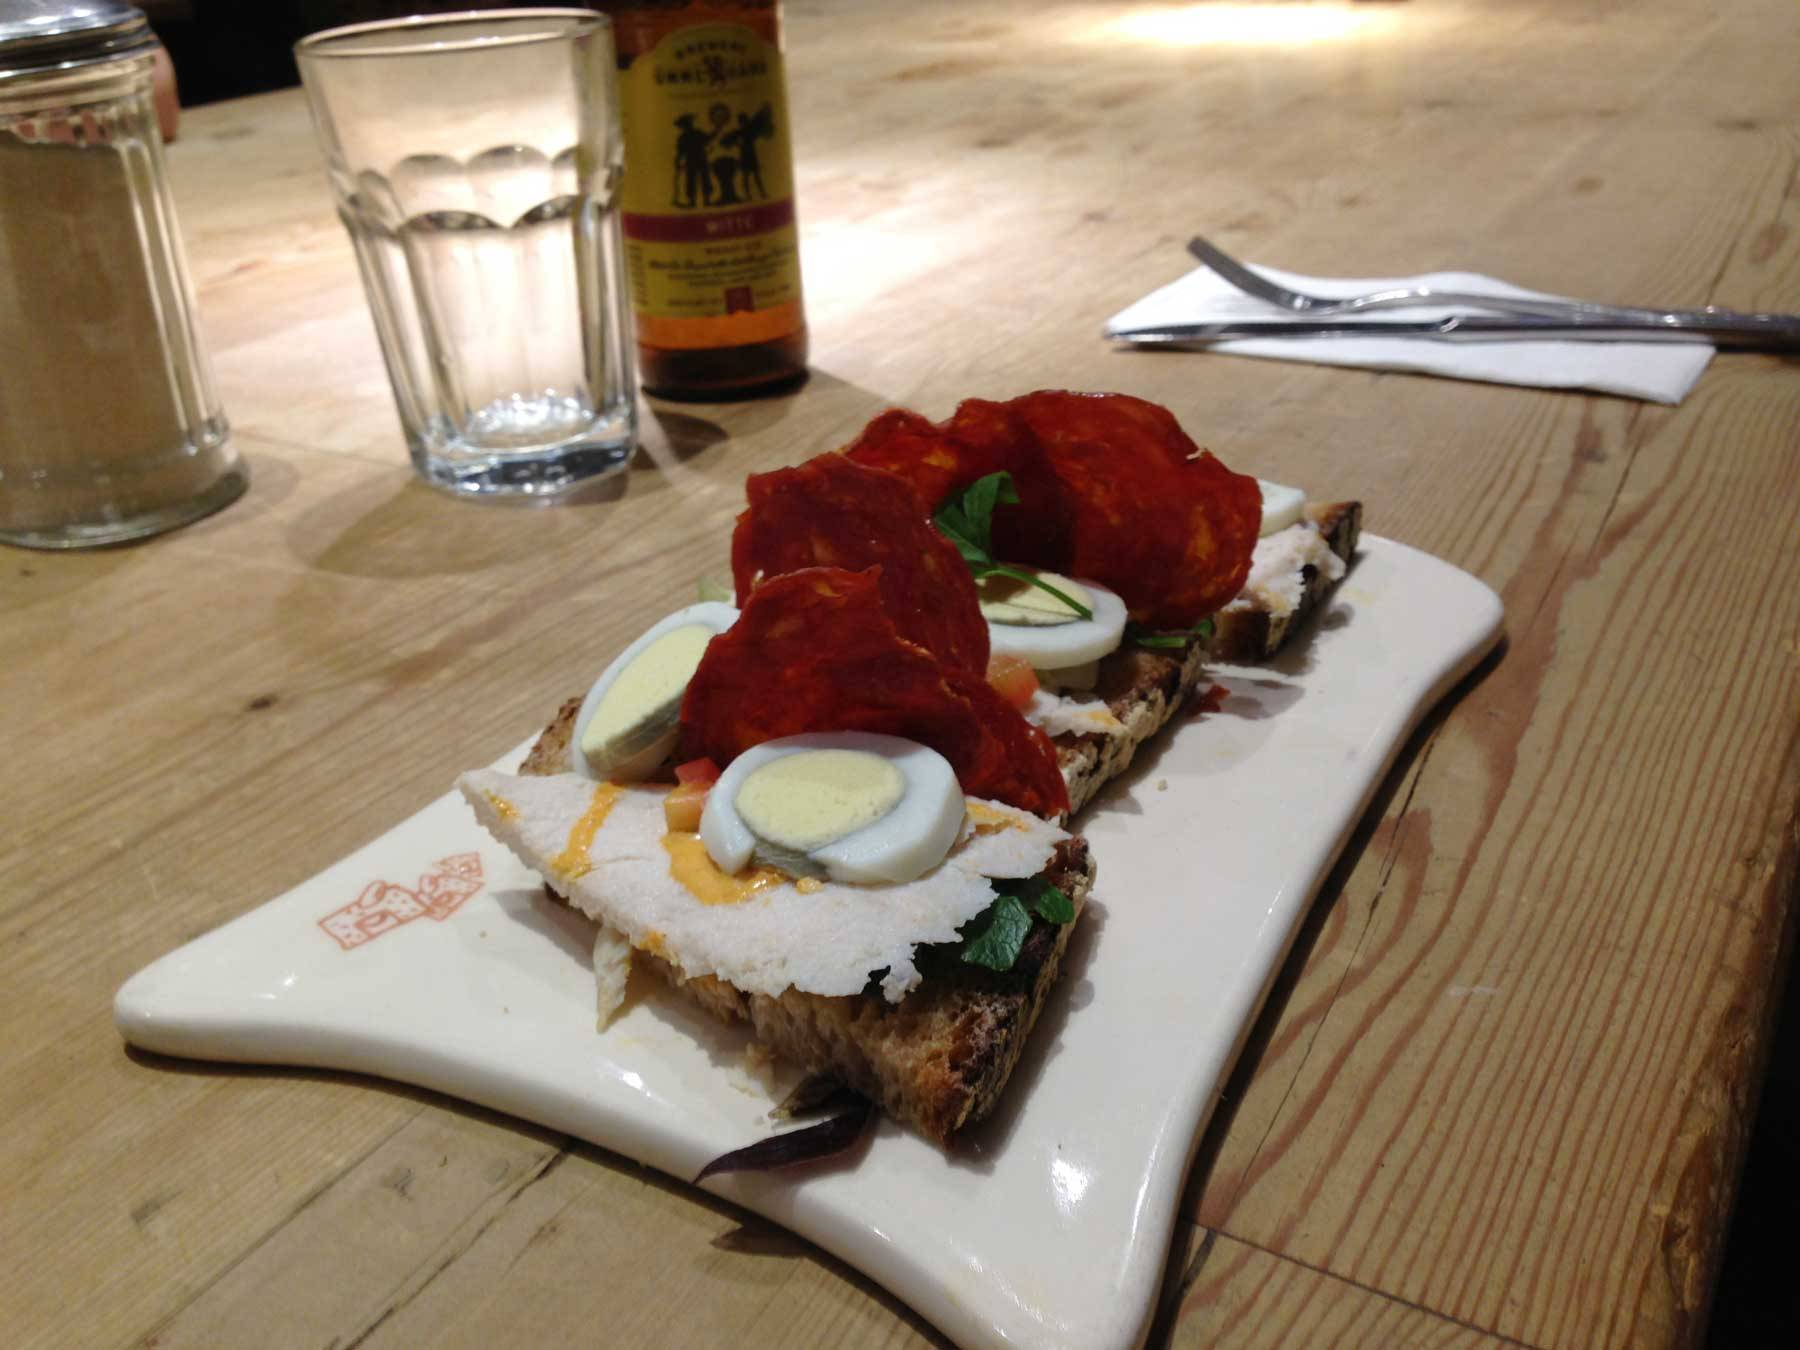 An open faced sandwich with slices of chicken and egg